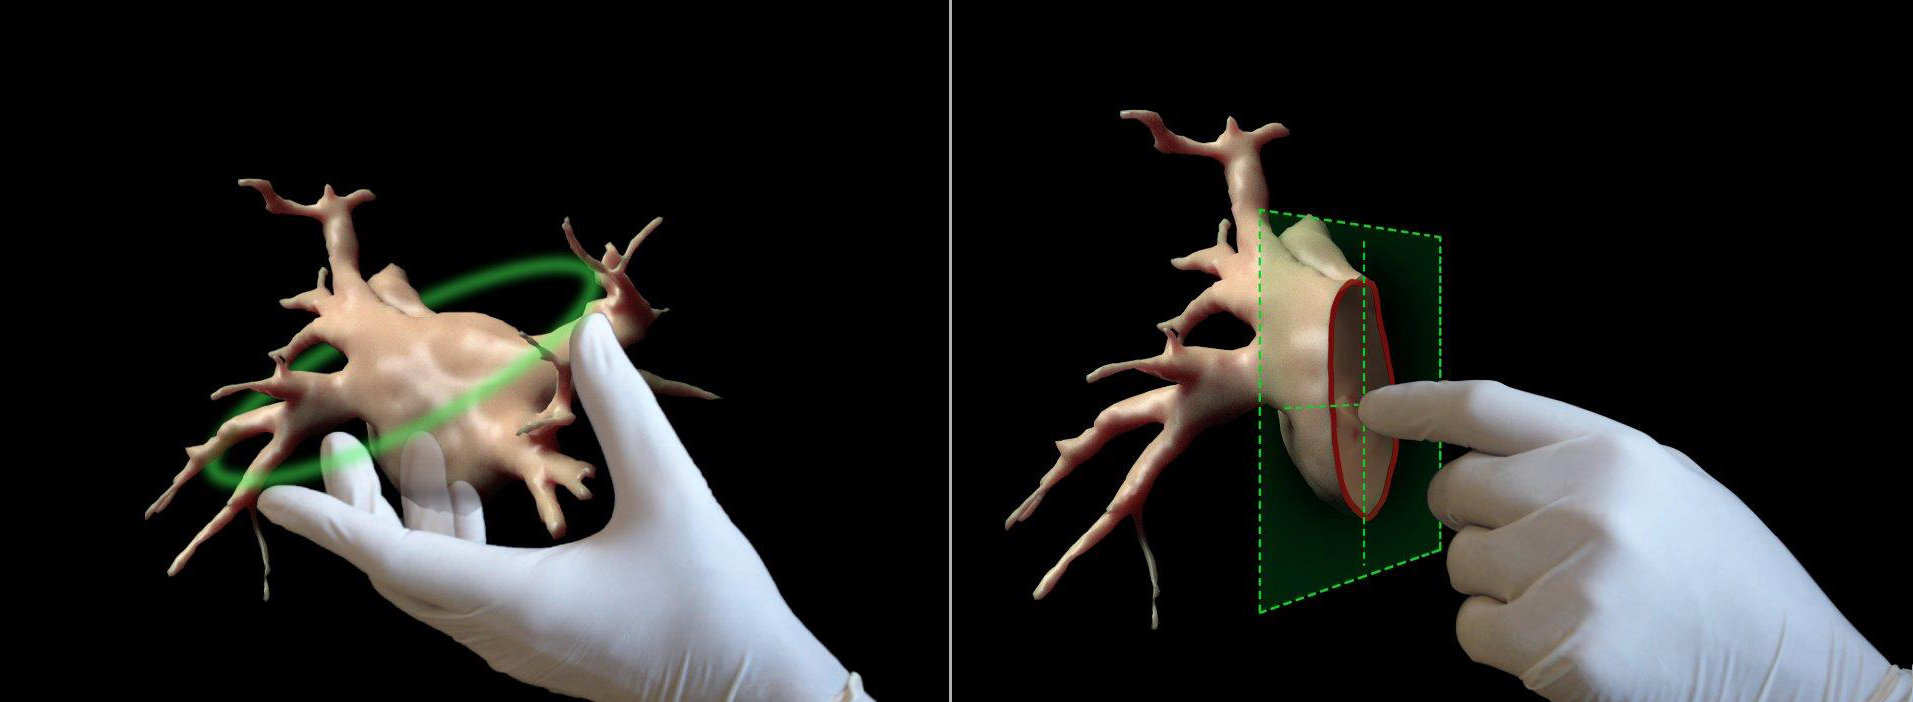 Holograms to be used to help heart surgeons during medical